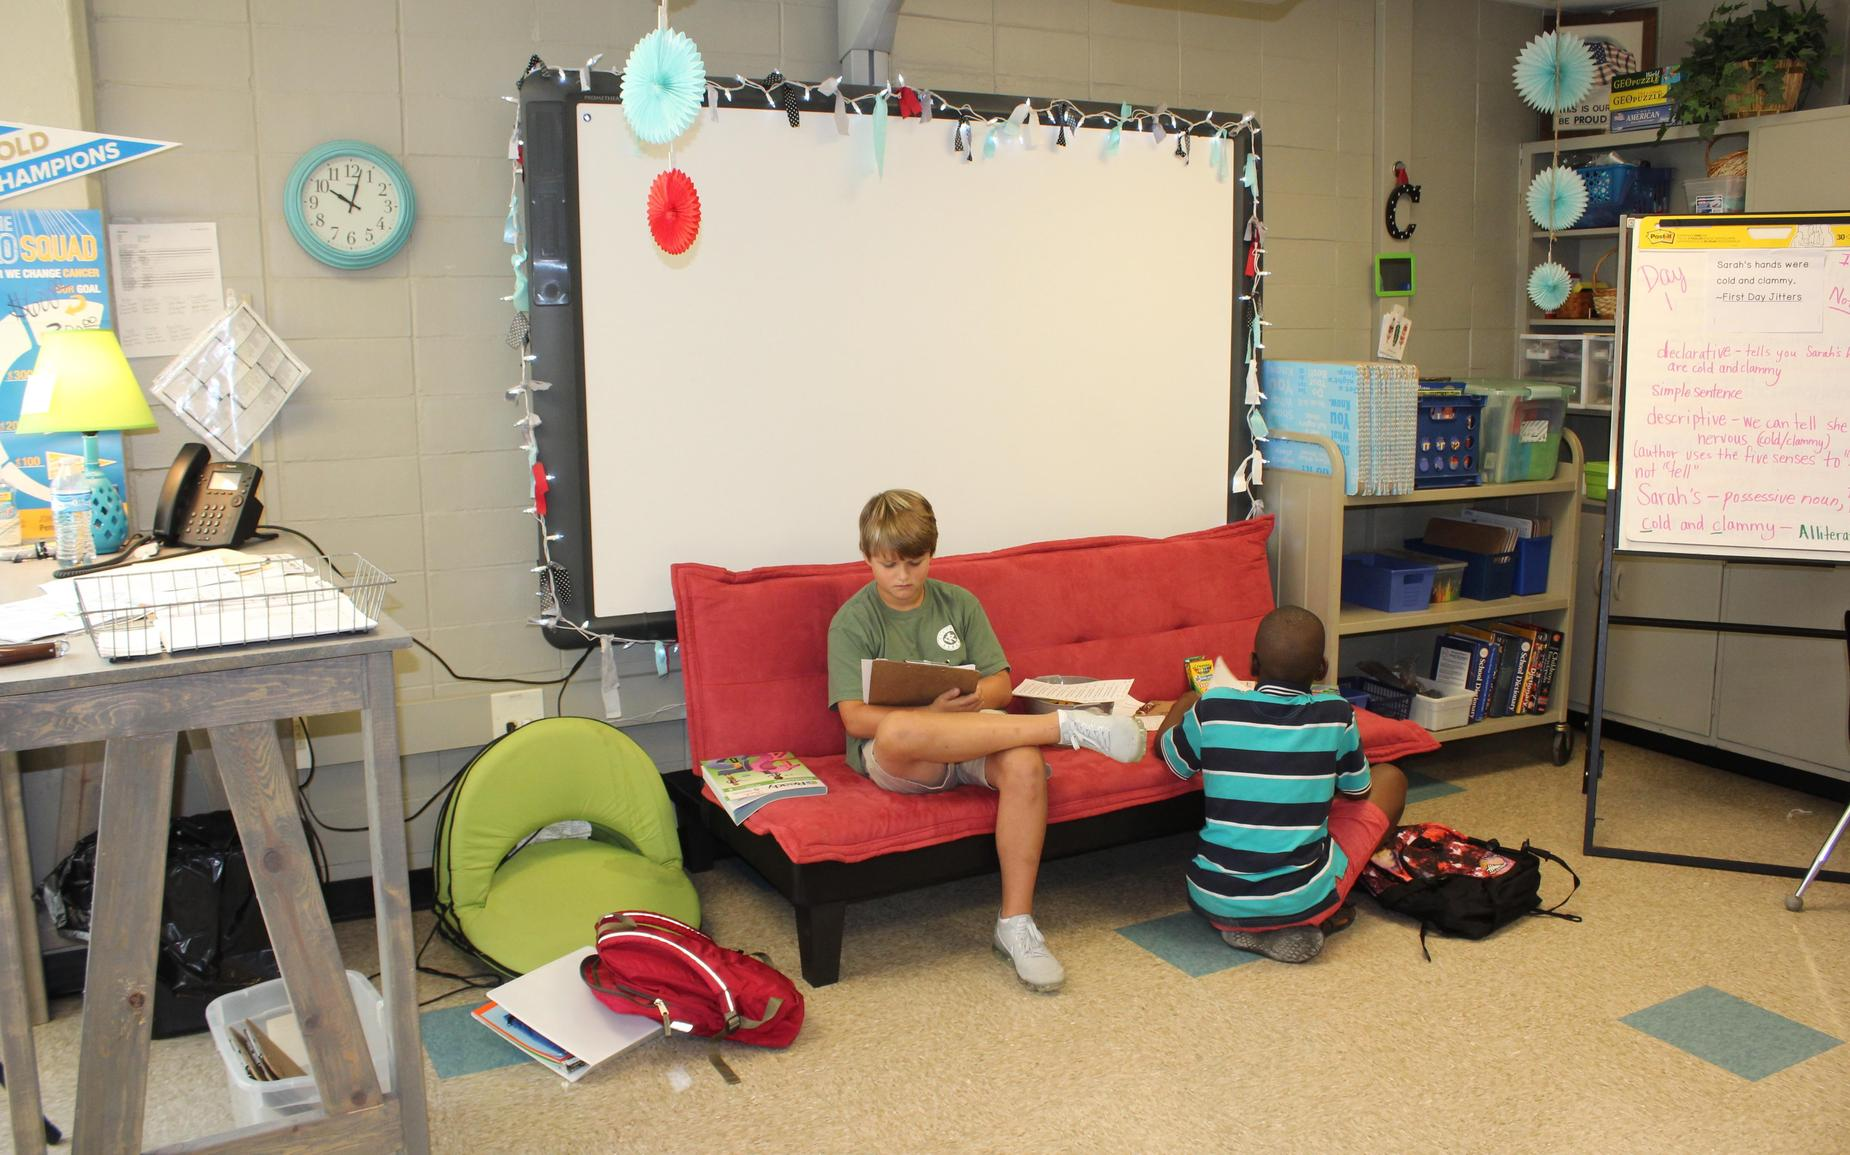 Students take advantage of Alternate seating at CMS